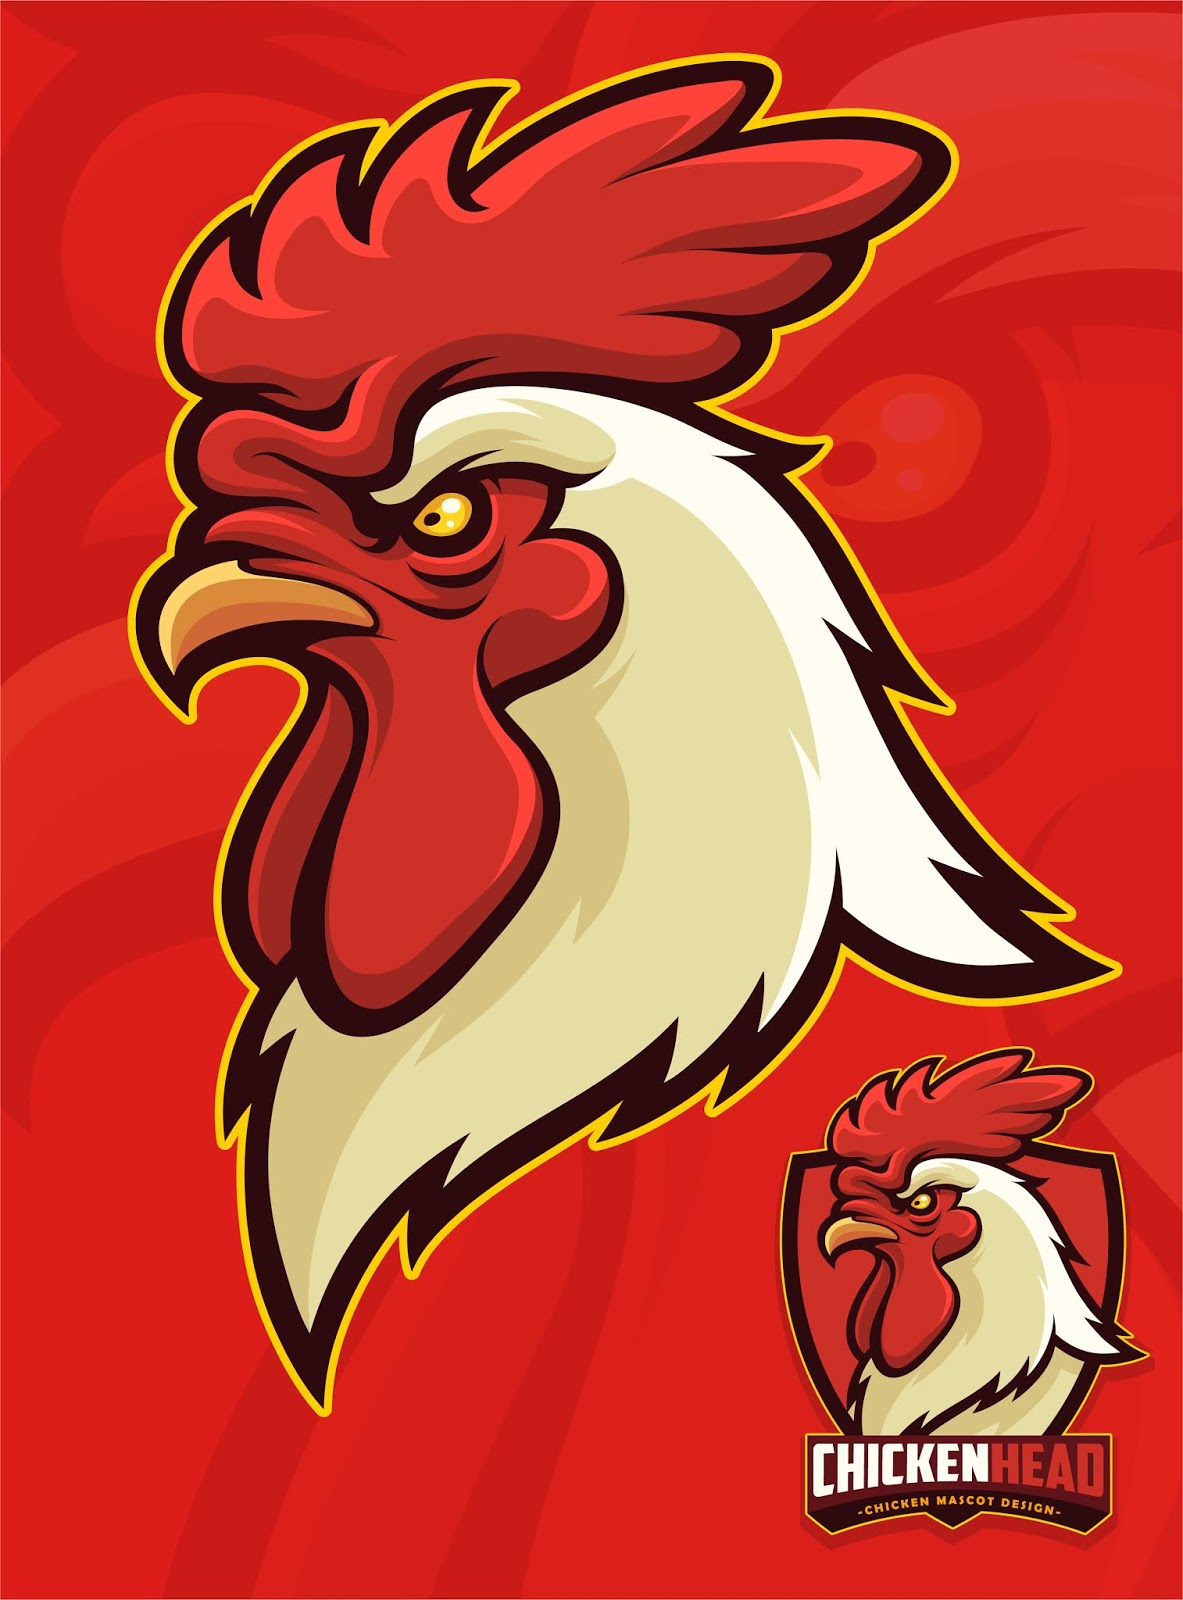 Chicken Head Mascot Sports University Mascot.jpg Free Download Vector CDR, AI, EPS and PNG Formats